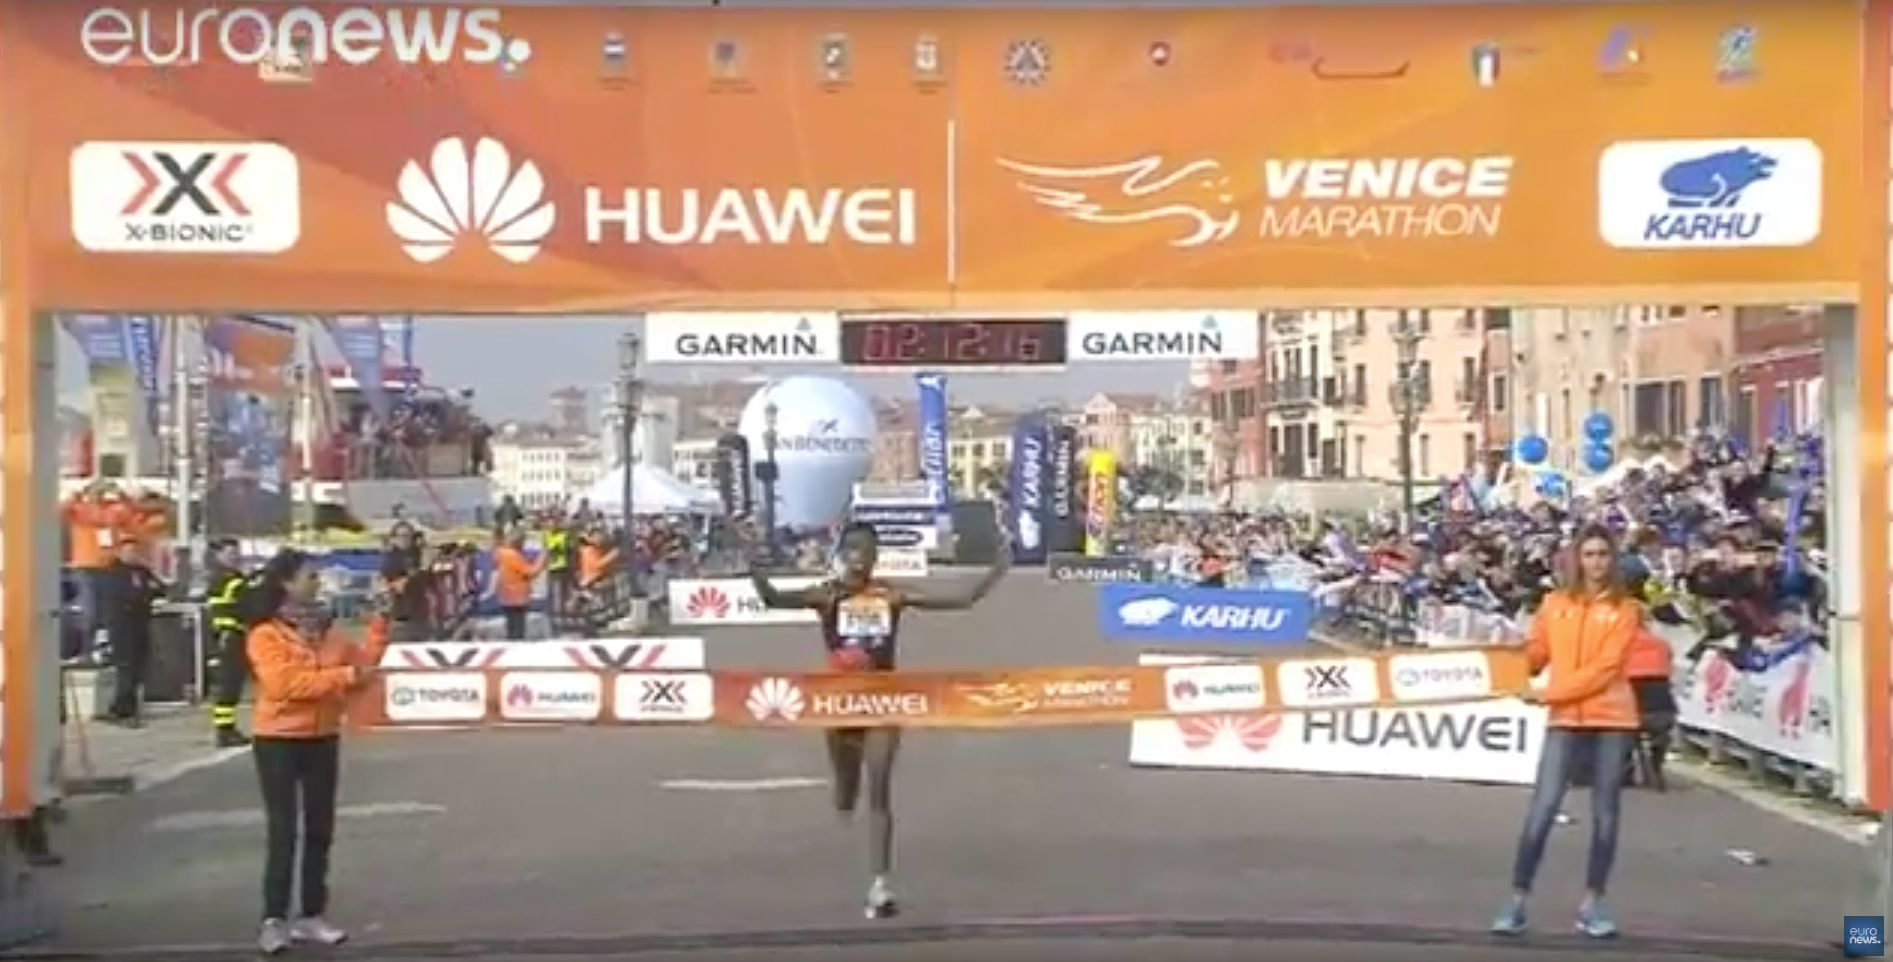 Runner Wins Venice Marathon After Rivals Make Wrong